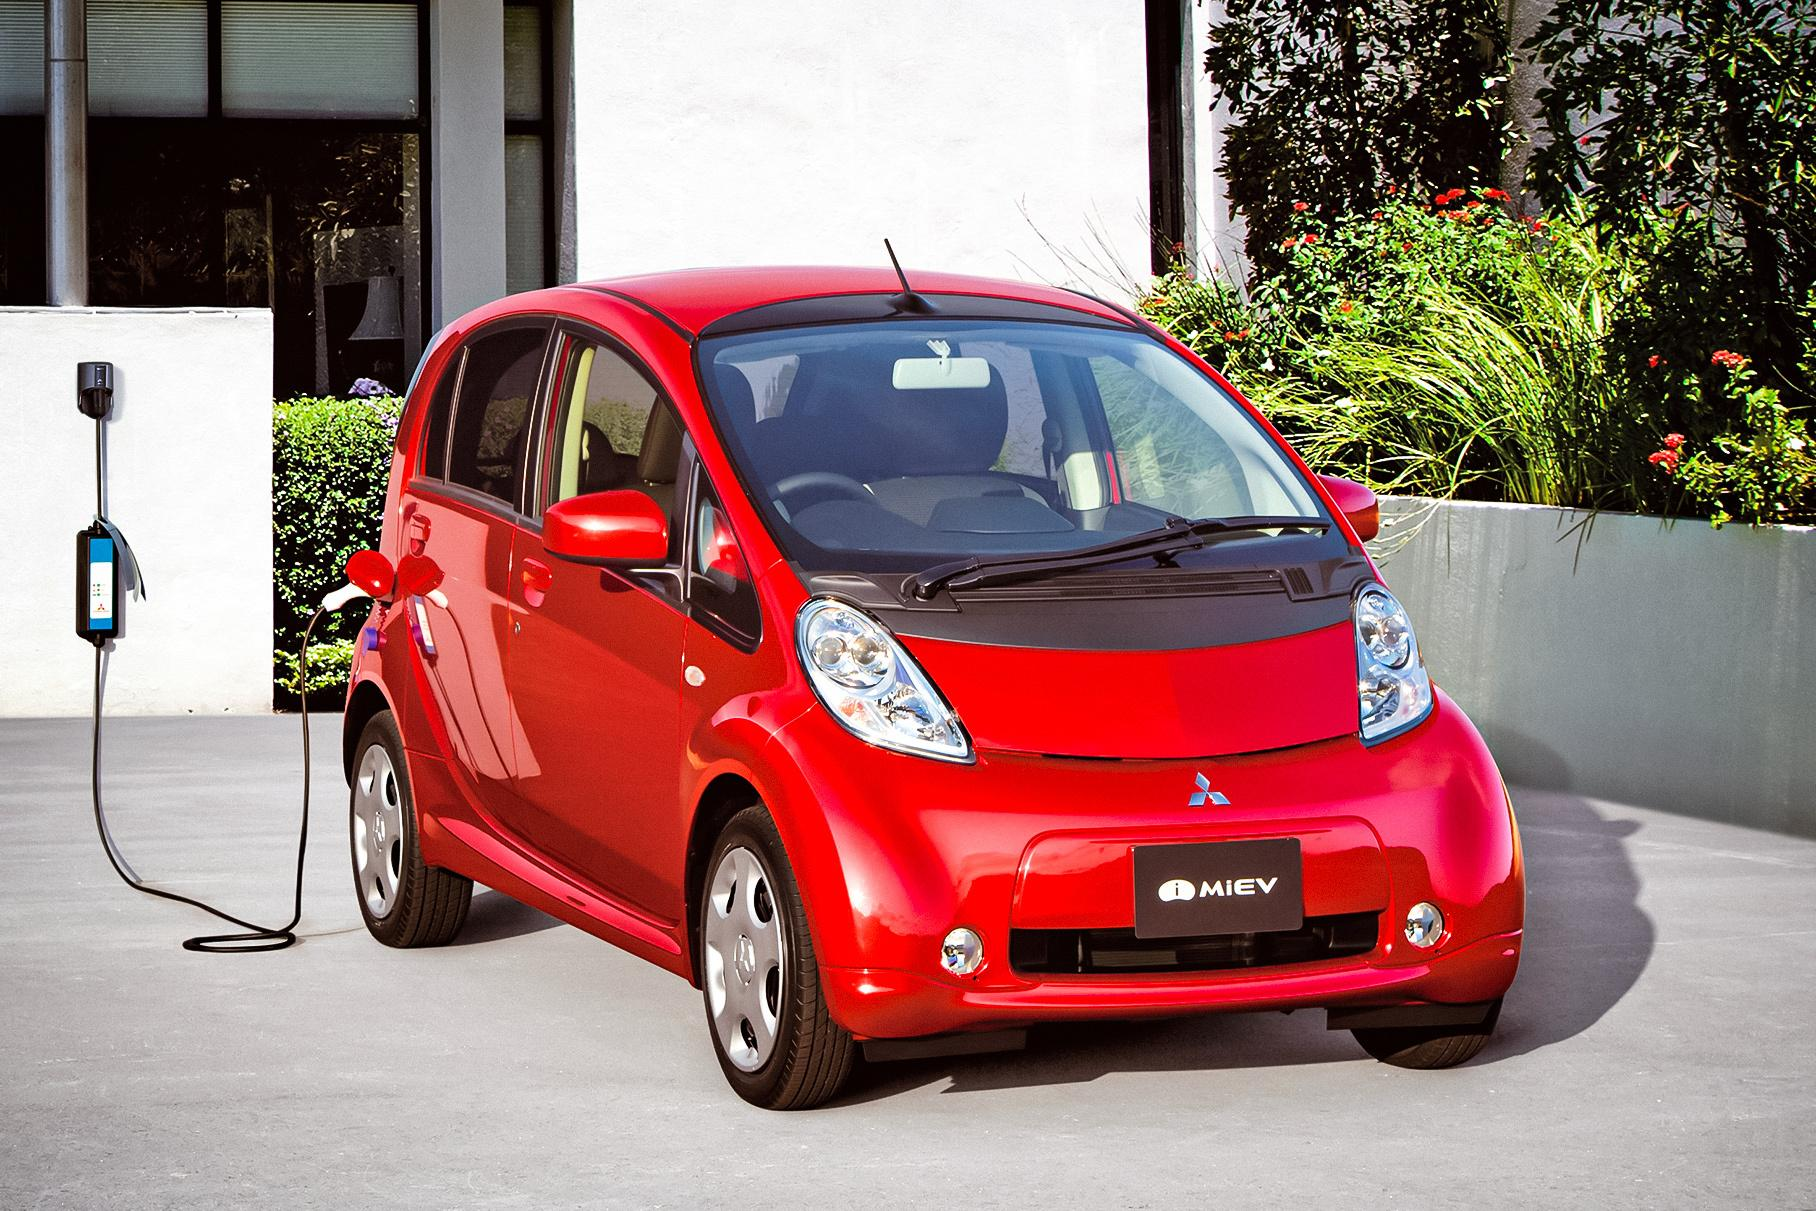 Mitsubishi has decided to end the production cycle of the world's first mass-issue full-electric car – the i-MiEV – prematurely due to poor sales and market competition growing beyond expectation.